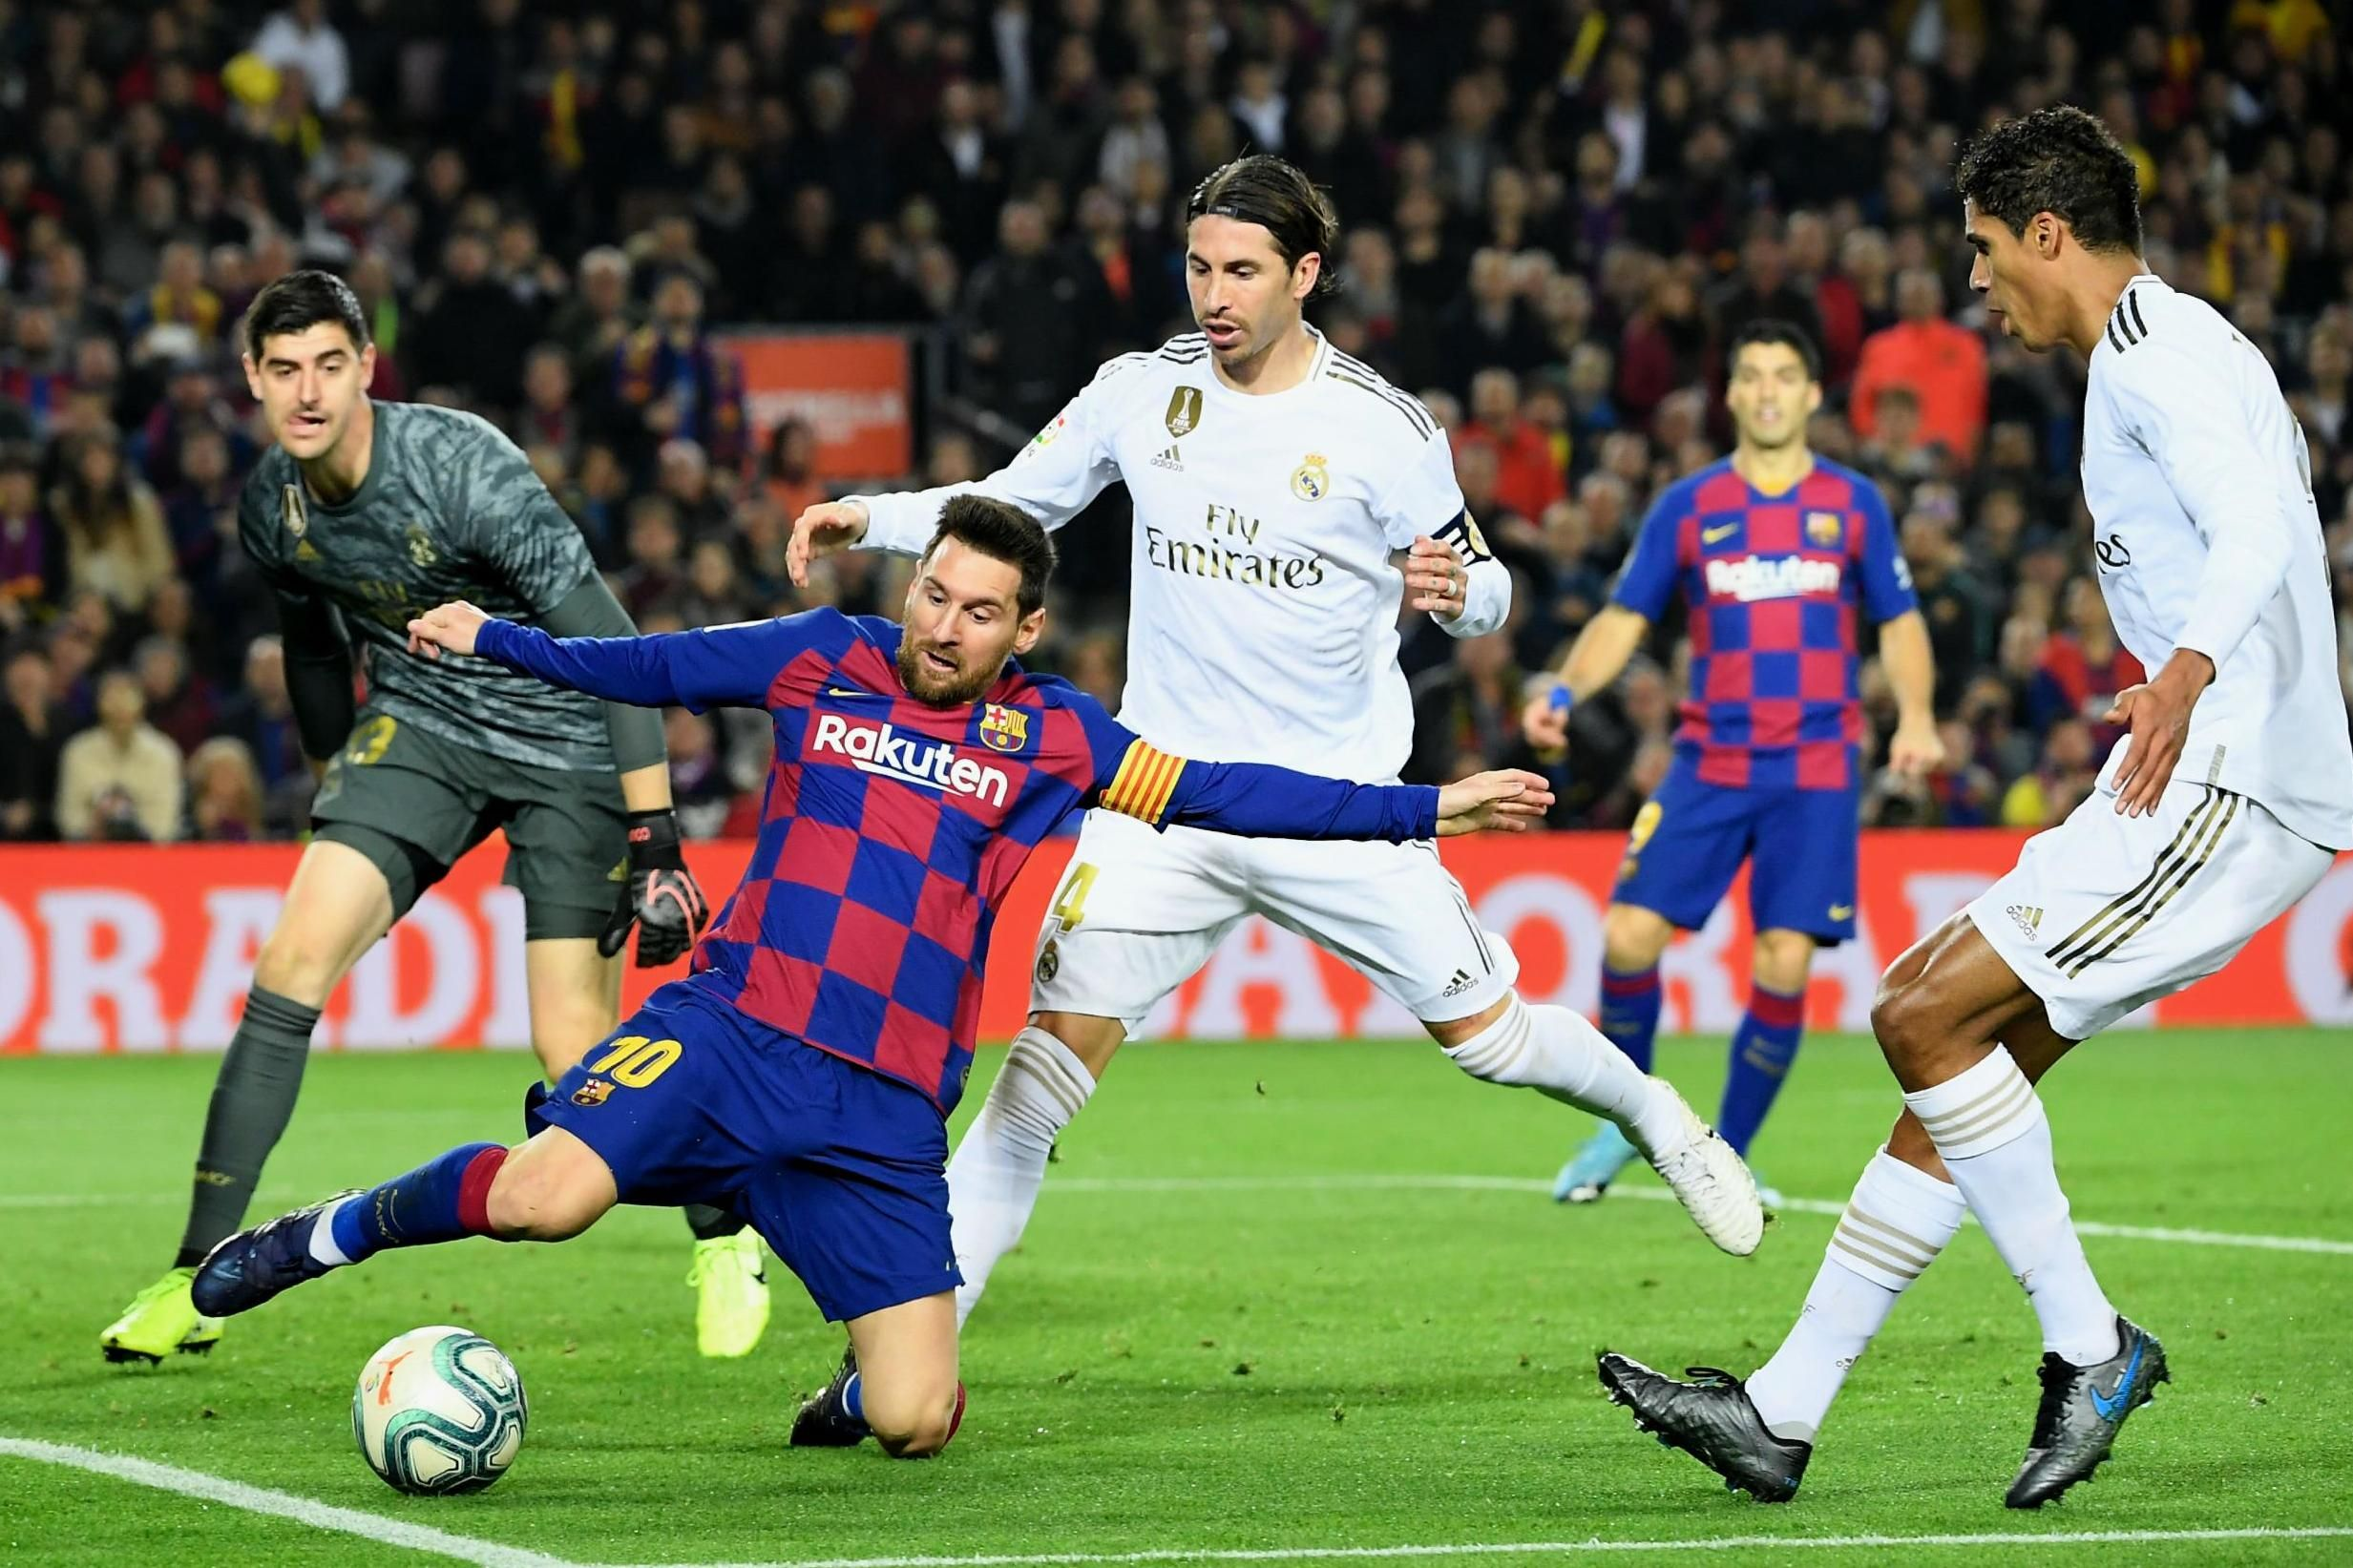 Watch Barcelona Vs Real Madrid El Clasico Live Now Free In 2020 Barcelona Vs Real Madrid Live In The Now Real Madrid